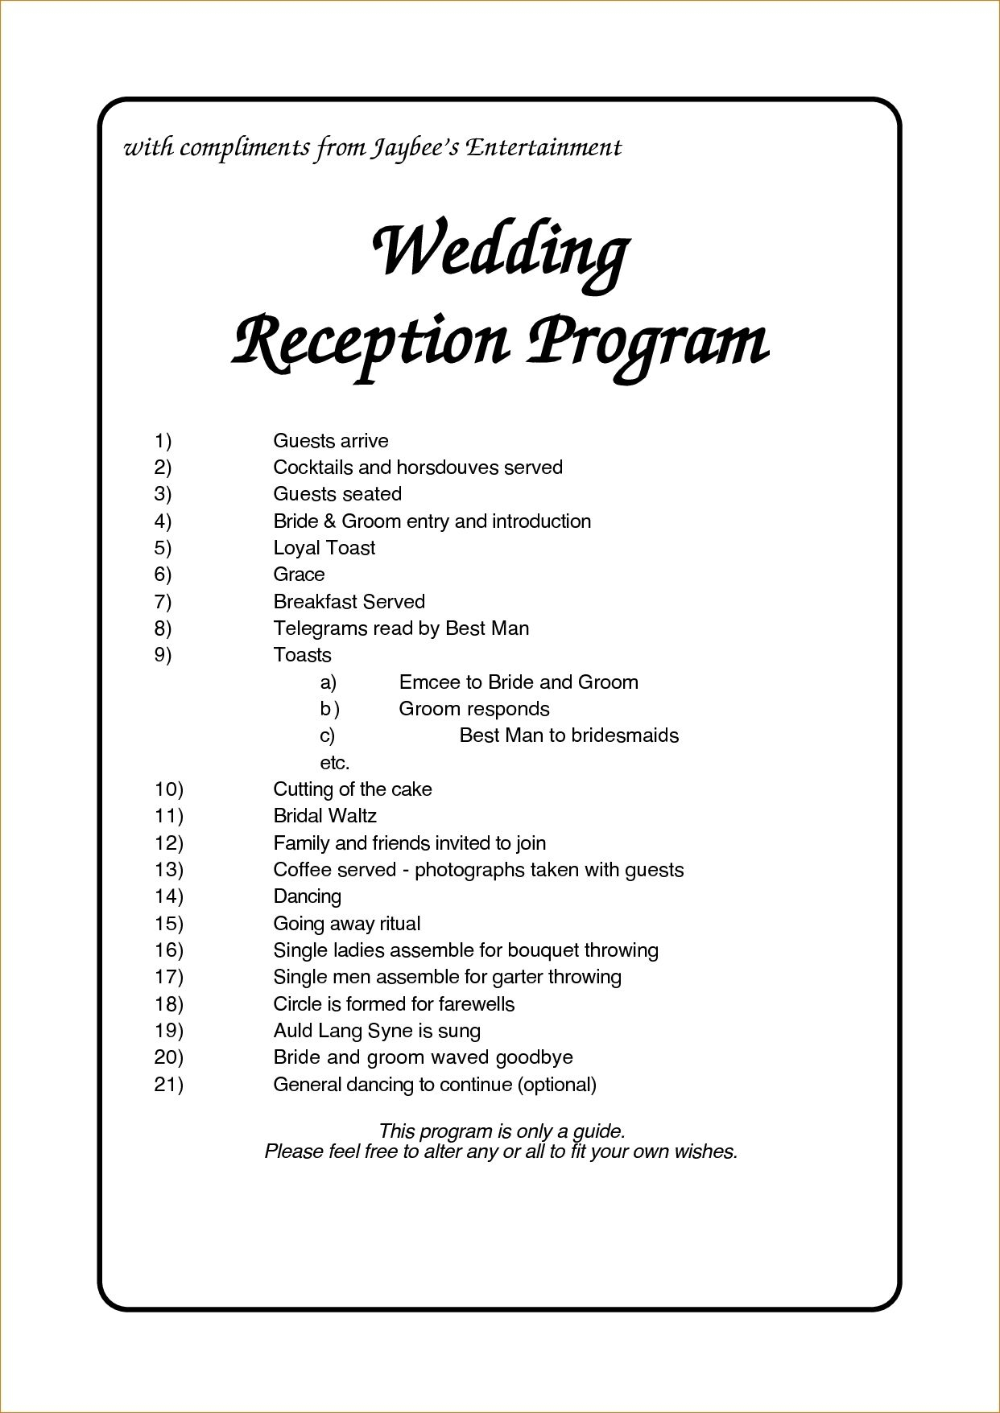 Wedding Reception Program Template Business Plan For Free Pro Form With Regard In 2020 Wedding Reception Program Wedding Reception Timeline Order Of Wedding Reception